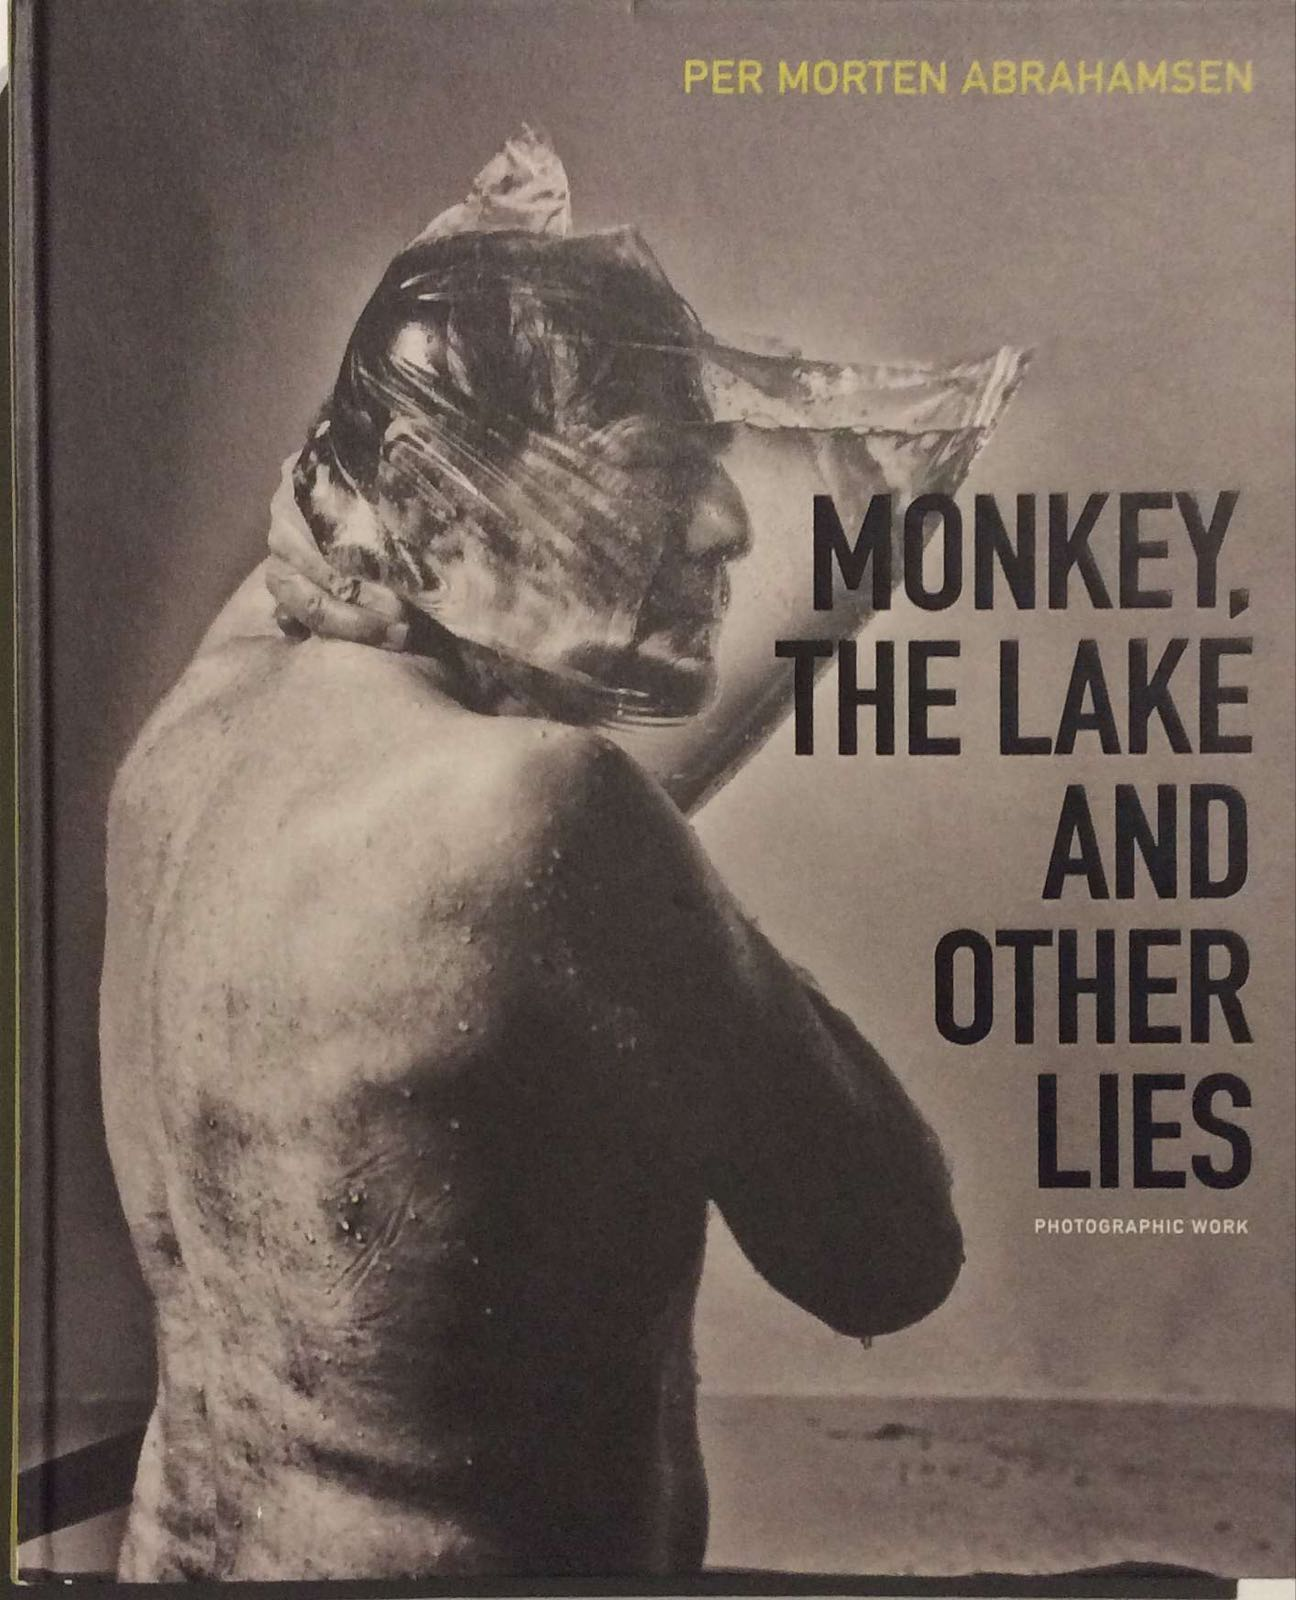 Abrahamsen, Per Morten. Monkey, the lake and other lies